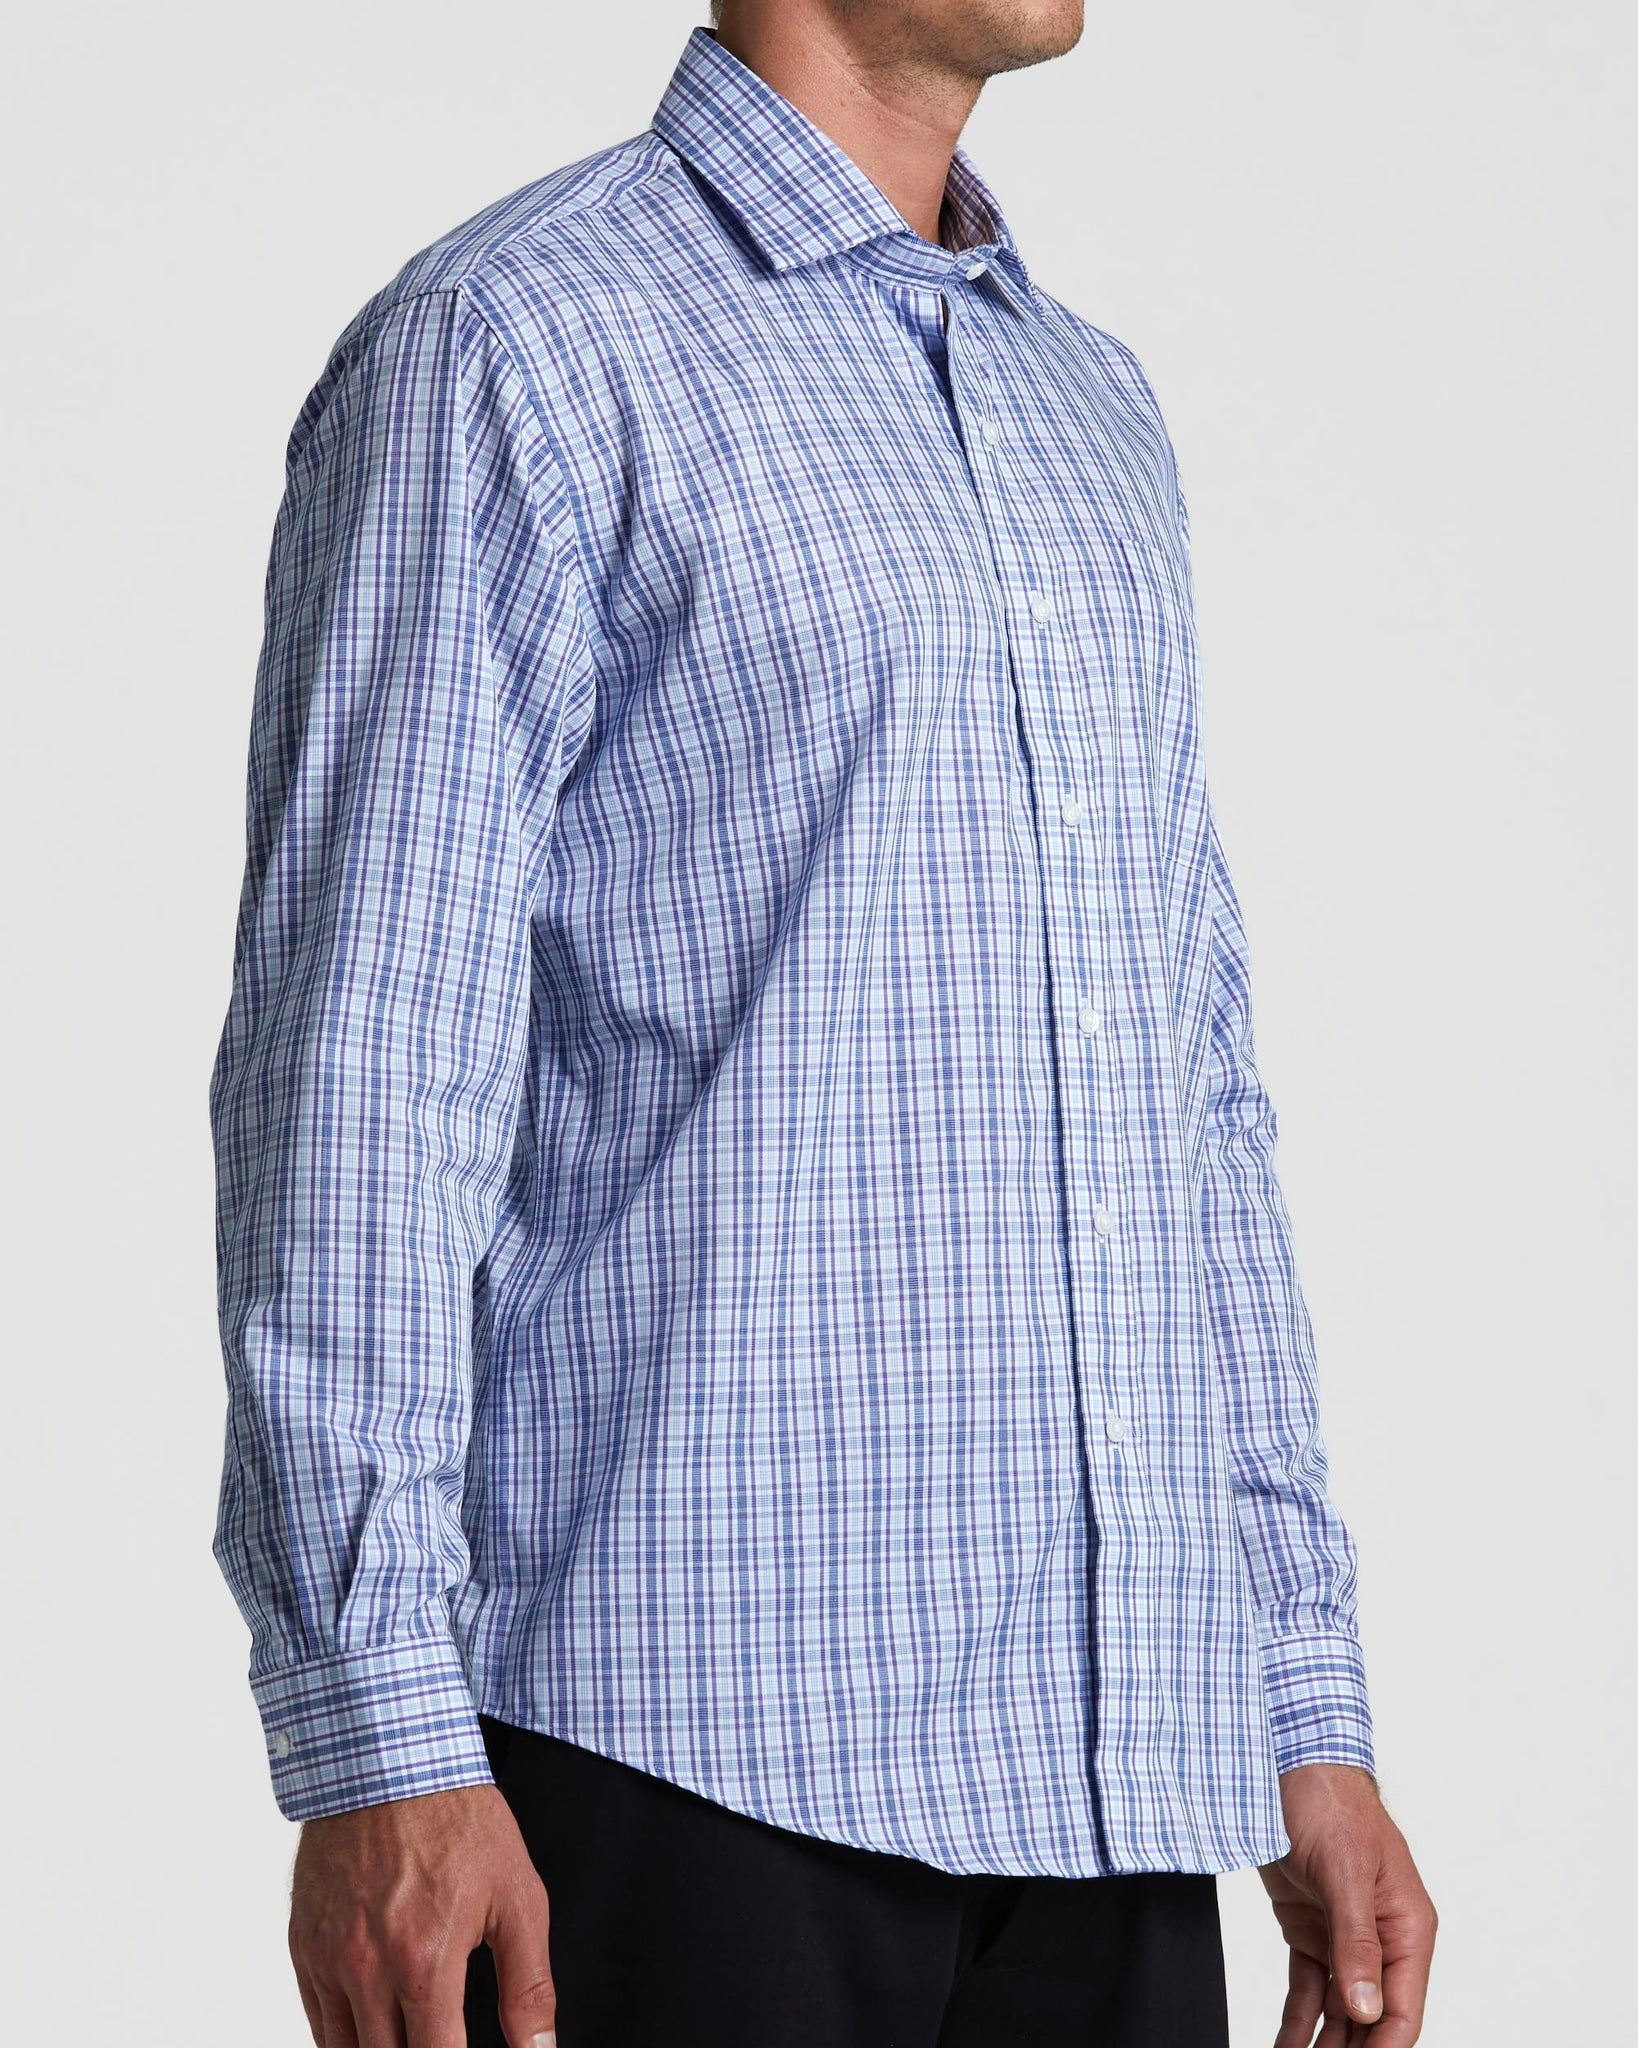 https://cdn.shopify.com/s/files/1/0249/6141/7252/files/Magna_Ready_-_Mens_-_Dress_Shirt_-_Blue_Purple_Check-fade.mp4?4372